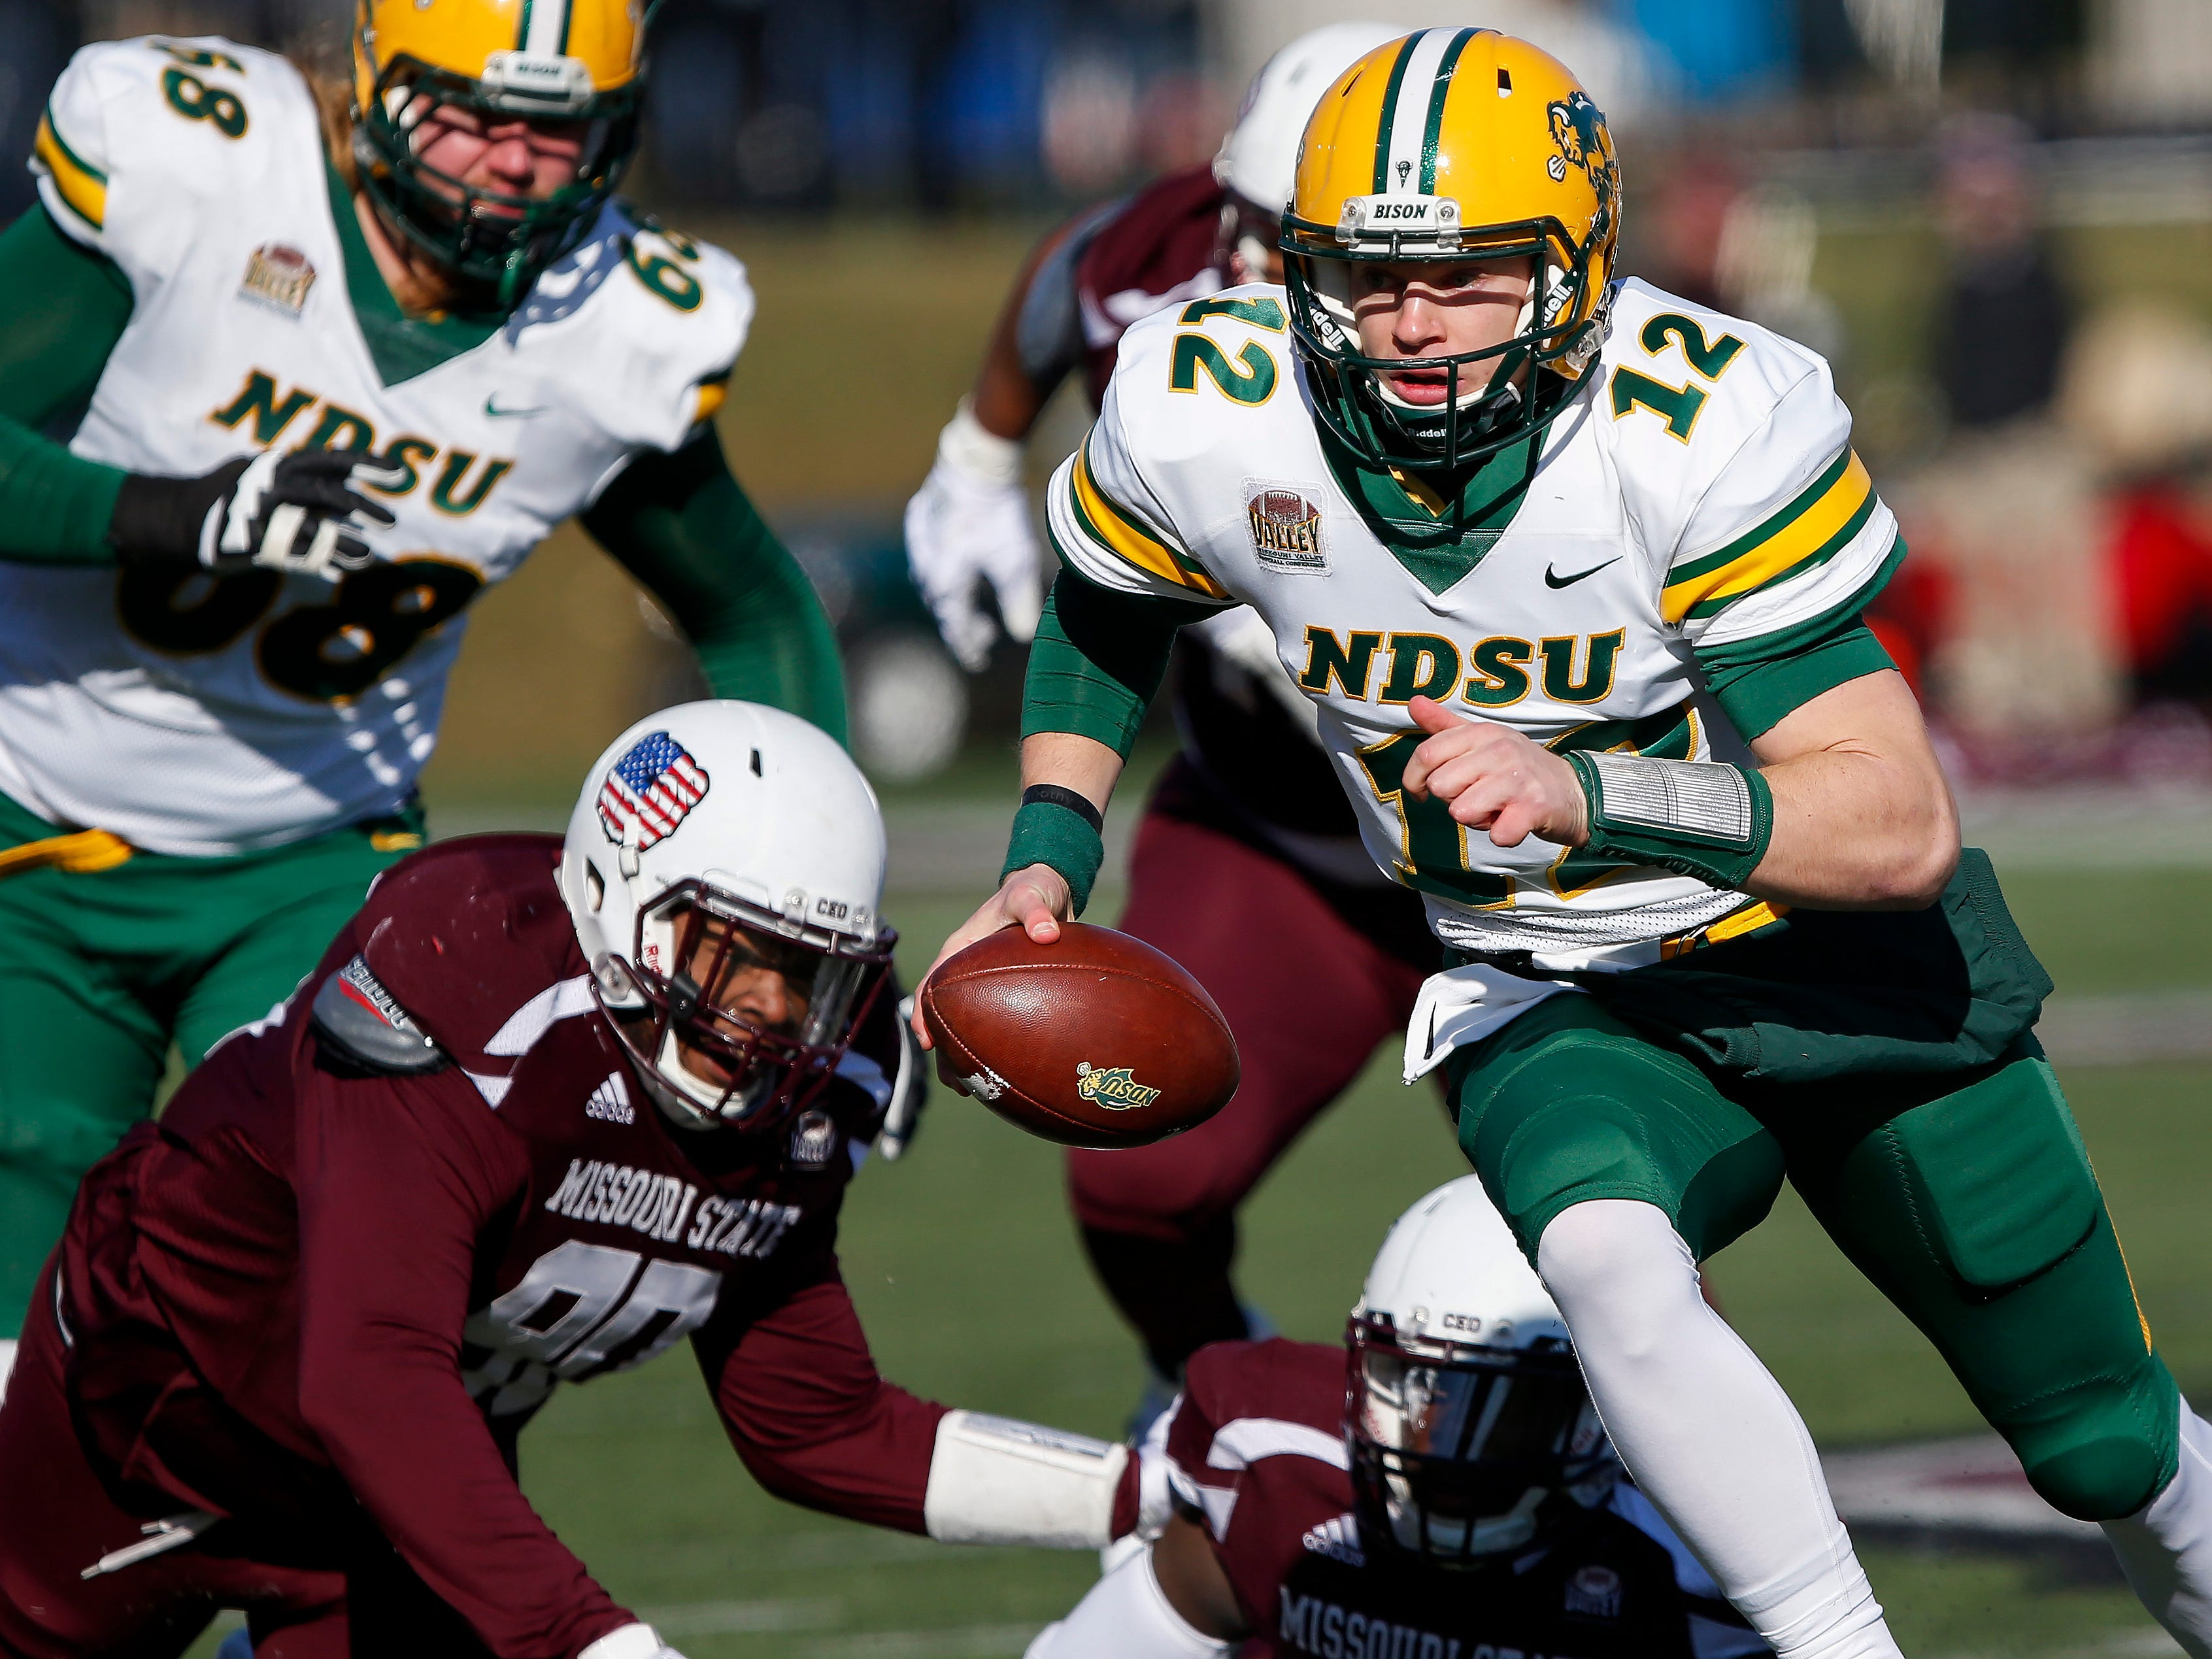 North Dakota State quarterback Easton Stick runs with the ball during their game against Missouri State University at Plaster Stadium on Saturday, Nov. 10, 2018.